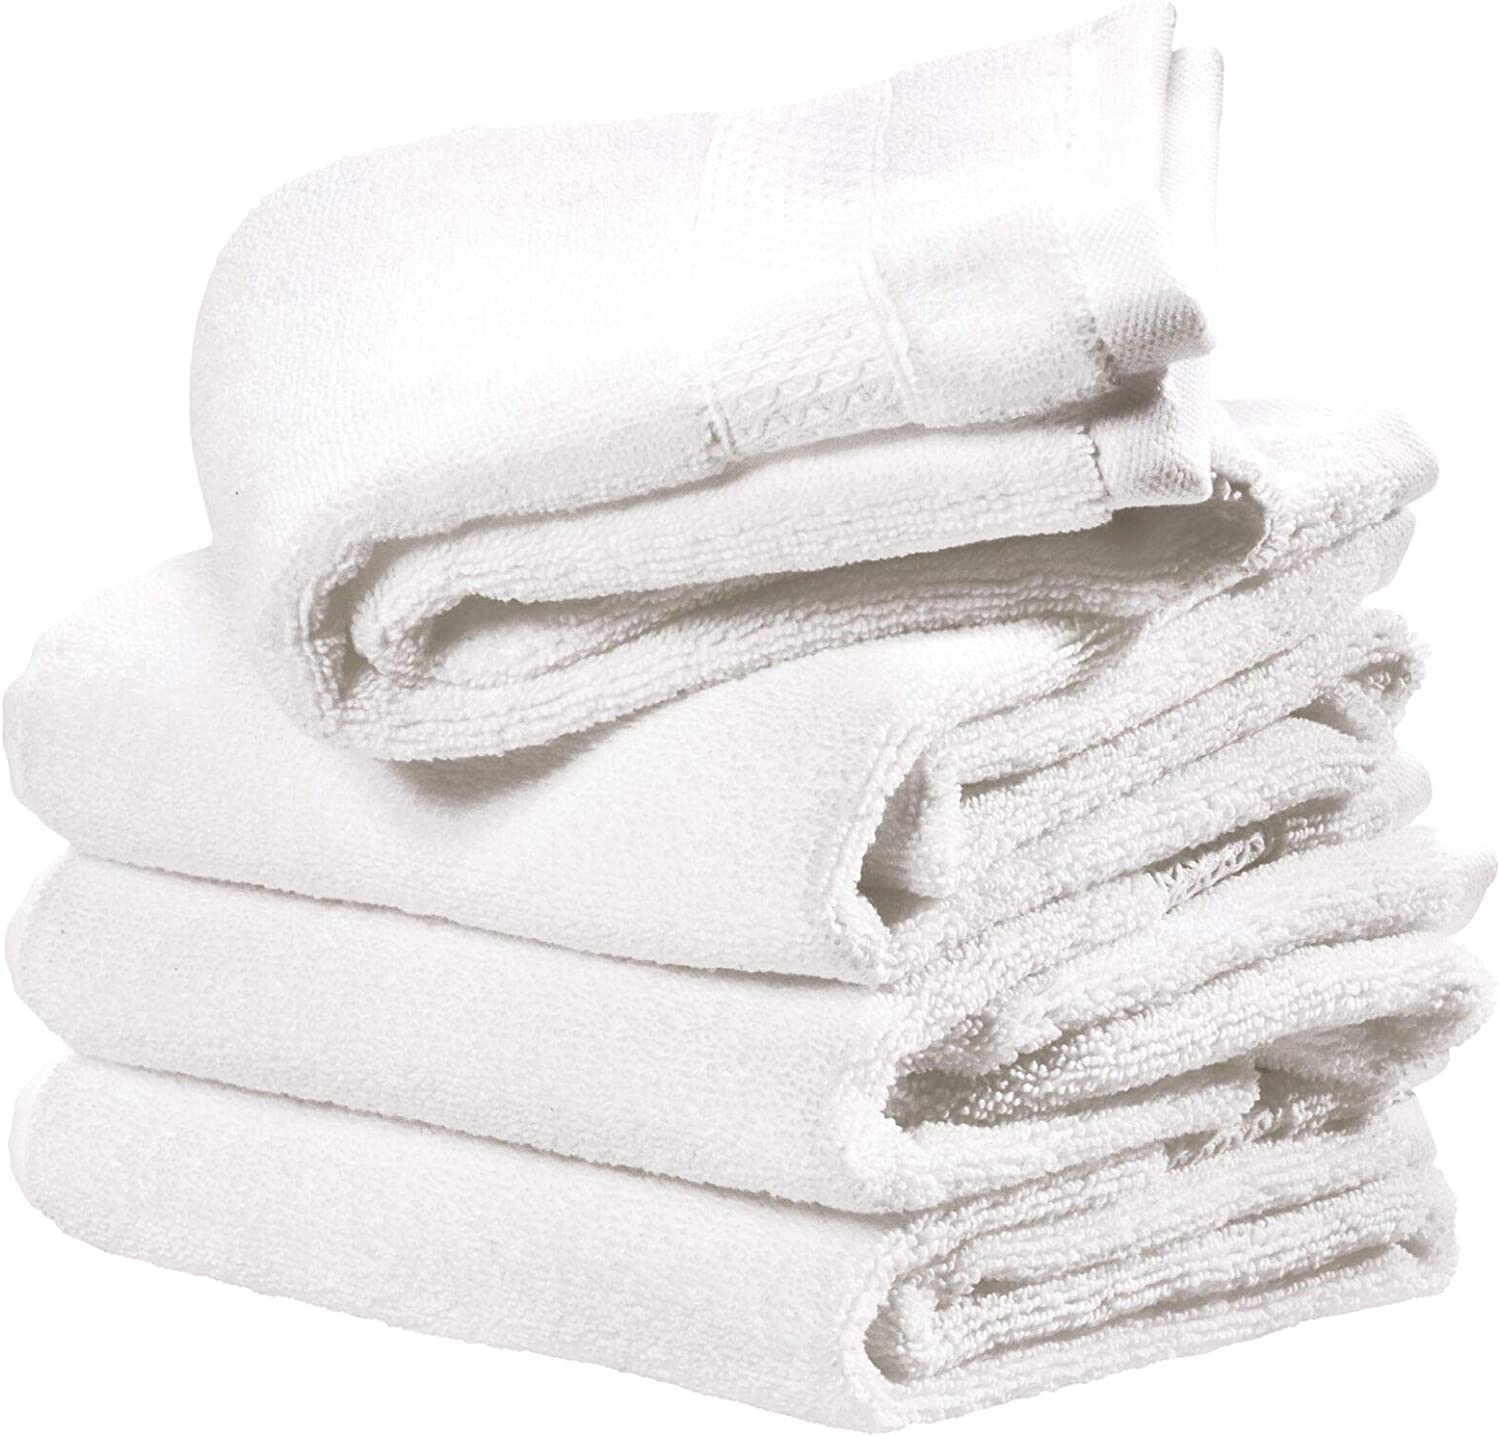 iDesign Spa Hand Towel with Hanging Loop, 100% Cotton Soft Absorbent Machine Washable Towel for Bathroom, Shower, Tub - Set of 4, White